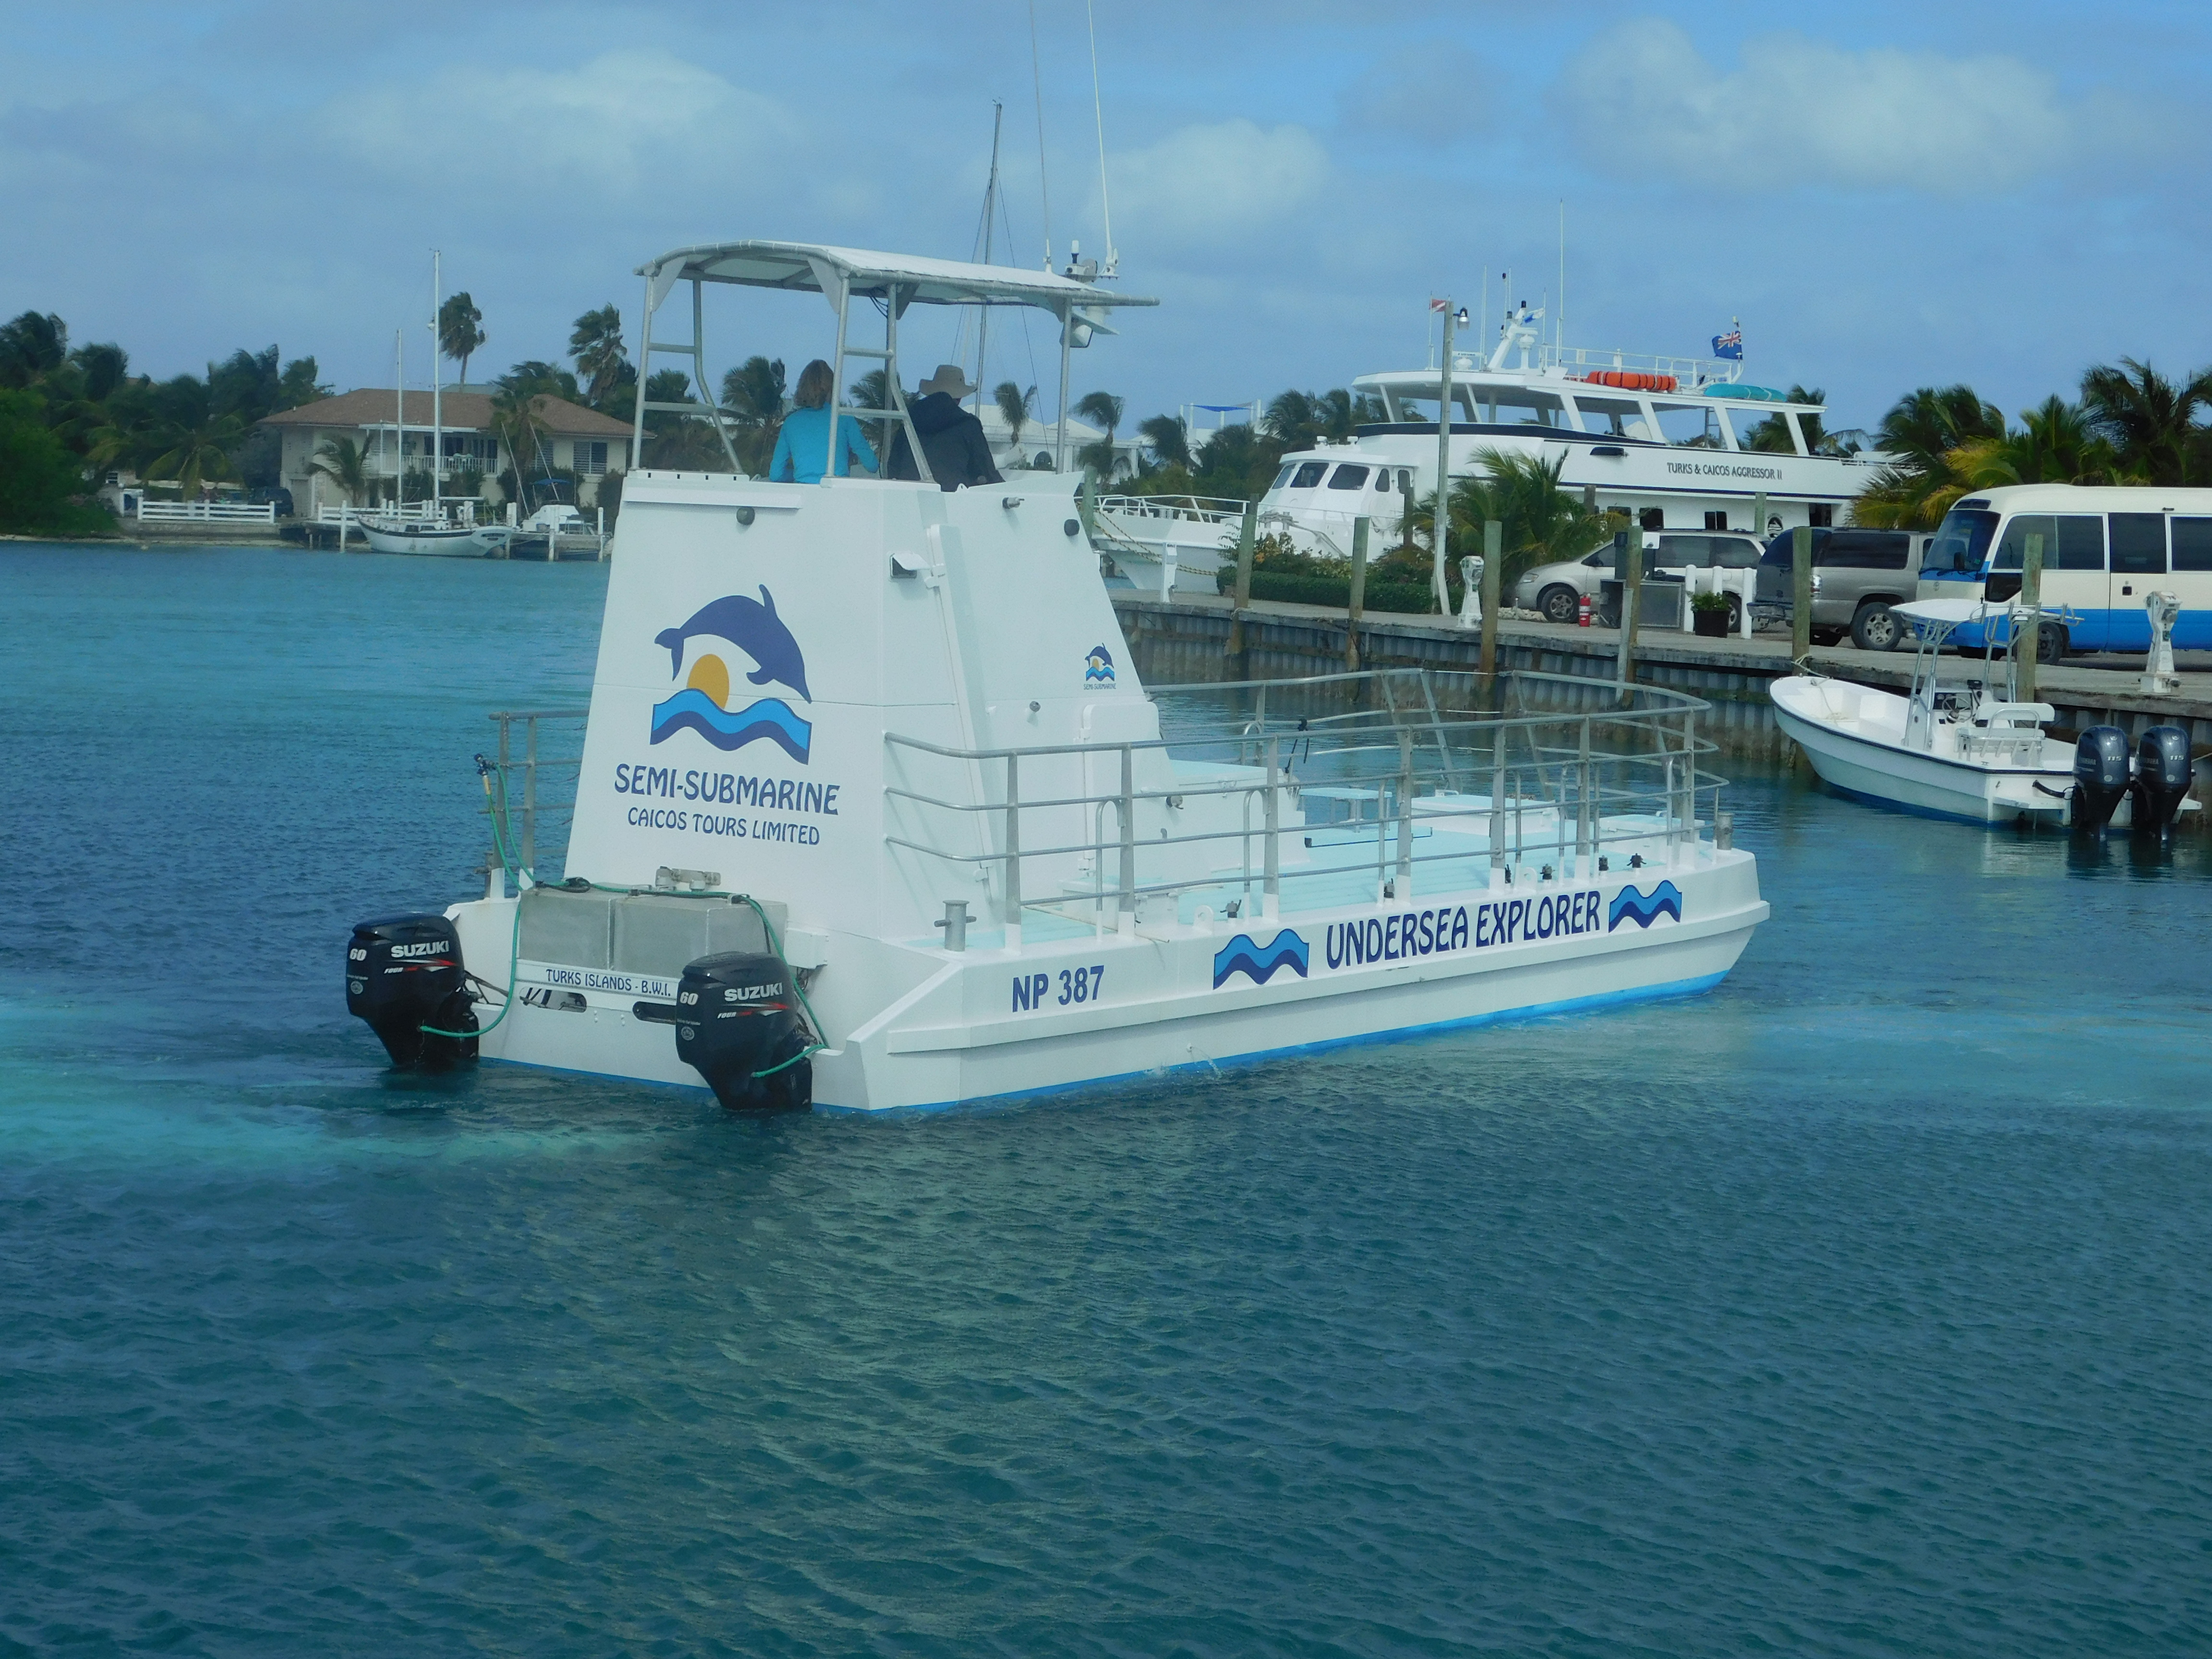 Semi-Submarine in Turks & Caicos - Island Guide. Excursion to see Coral Reef and Sea Turtles.